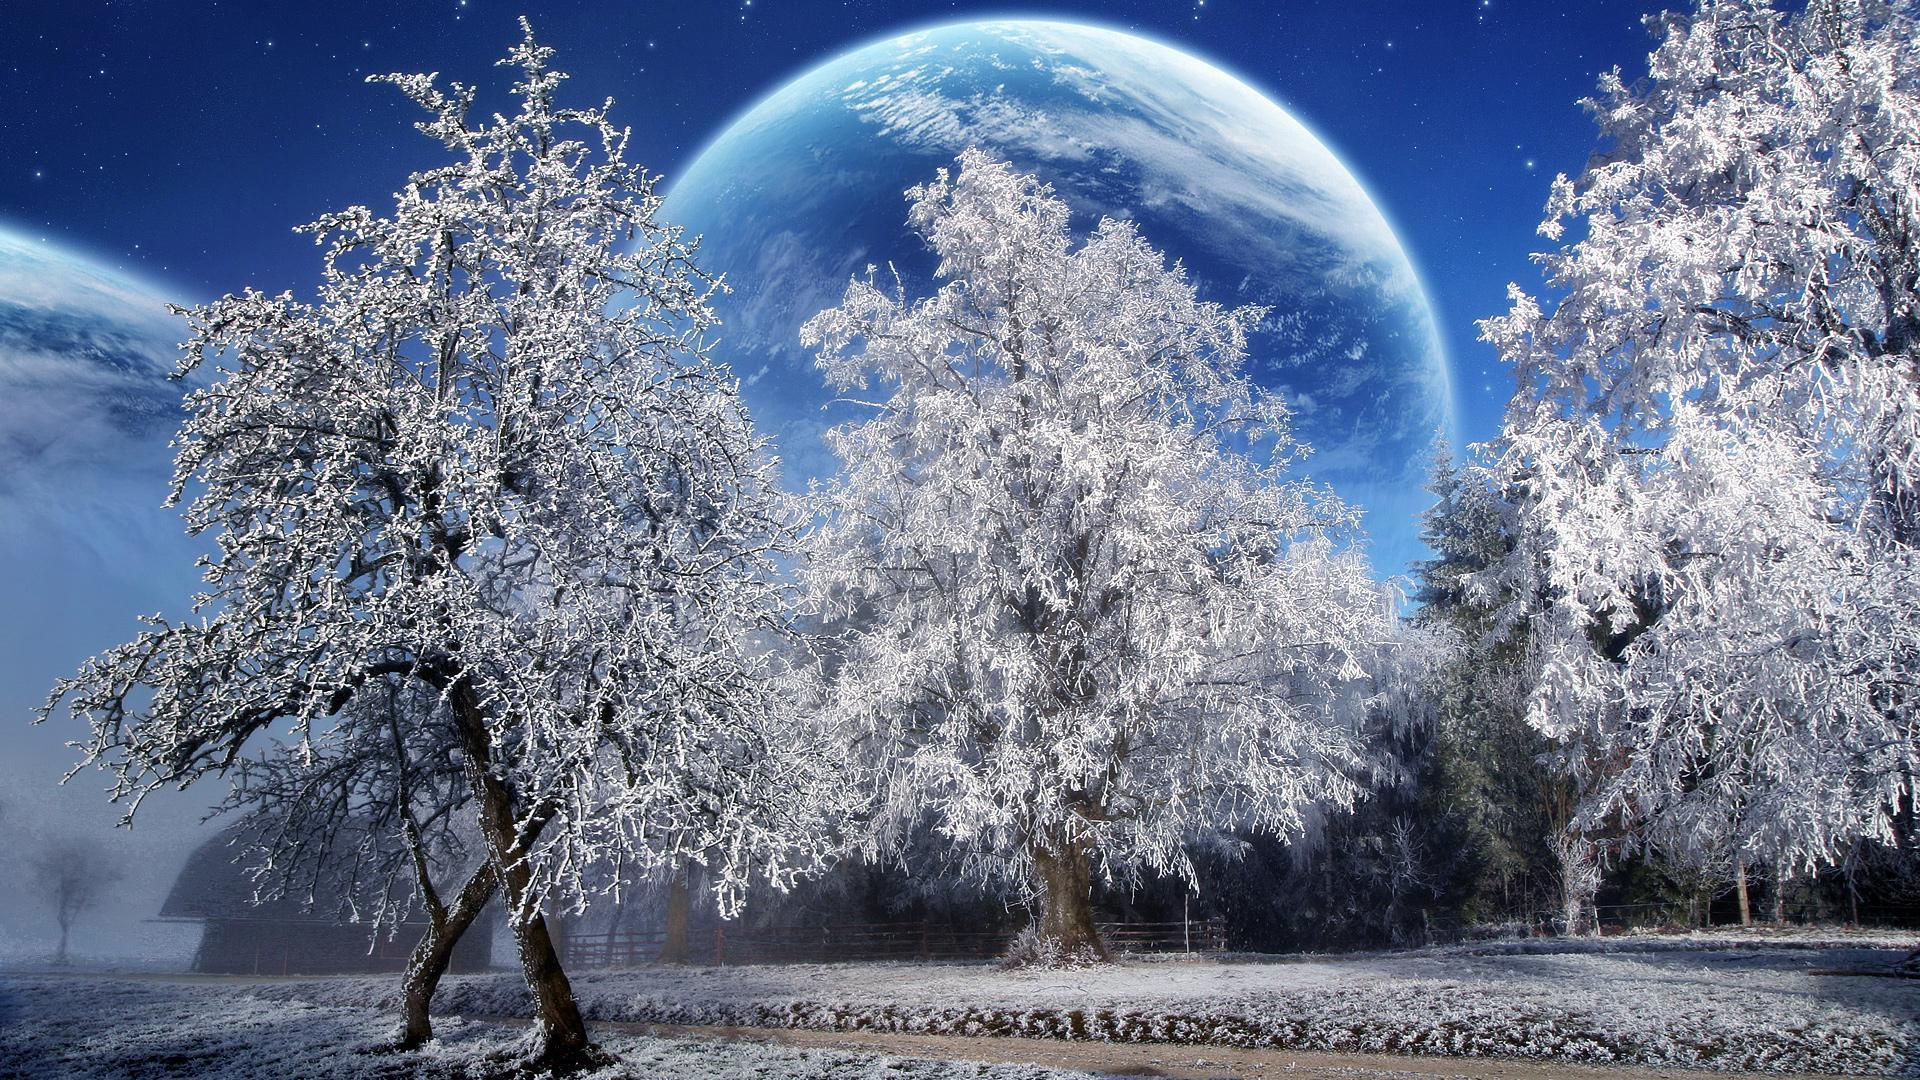 Winter Wallpaper Hd Picture 1920X1080 Wallpaper 32527 Label ...